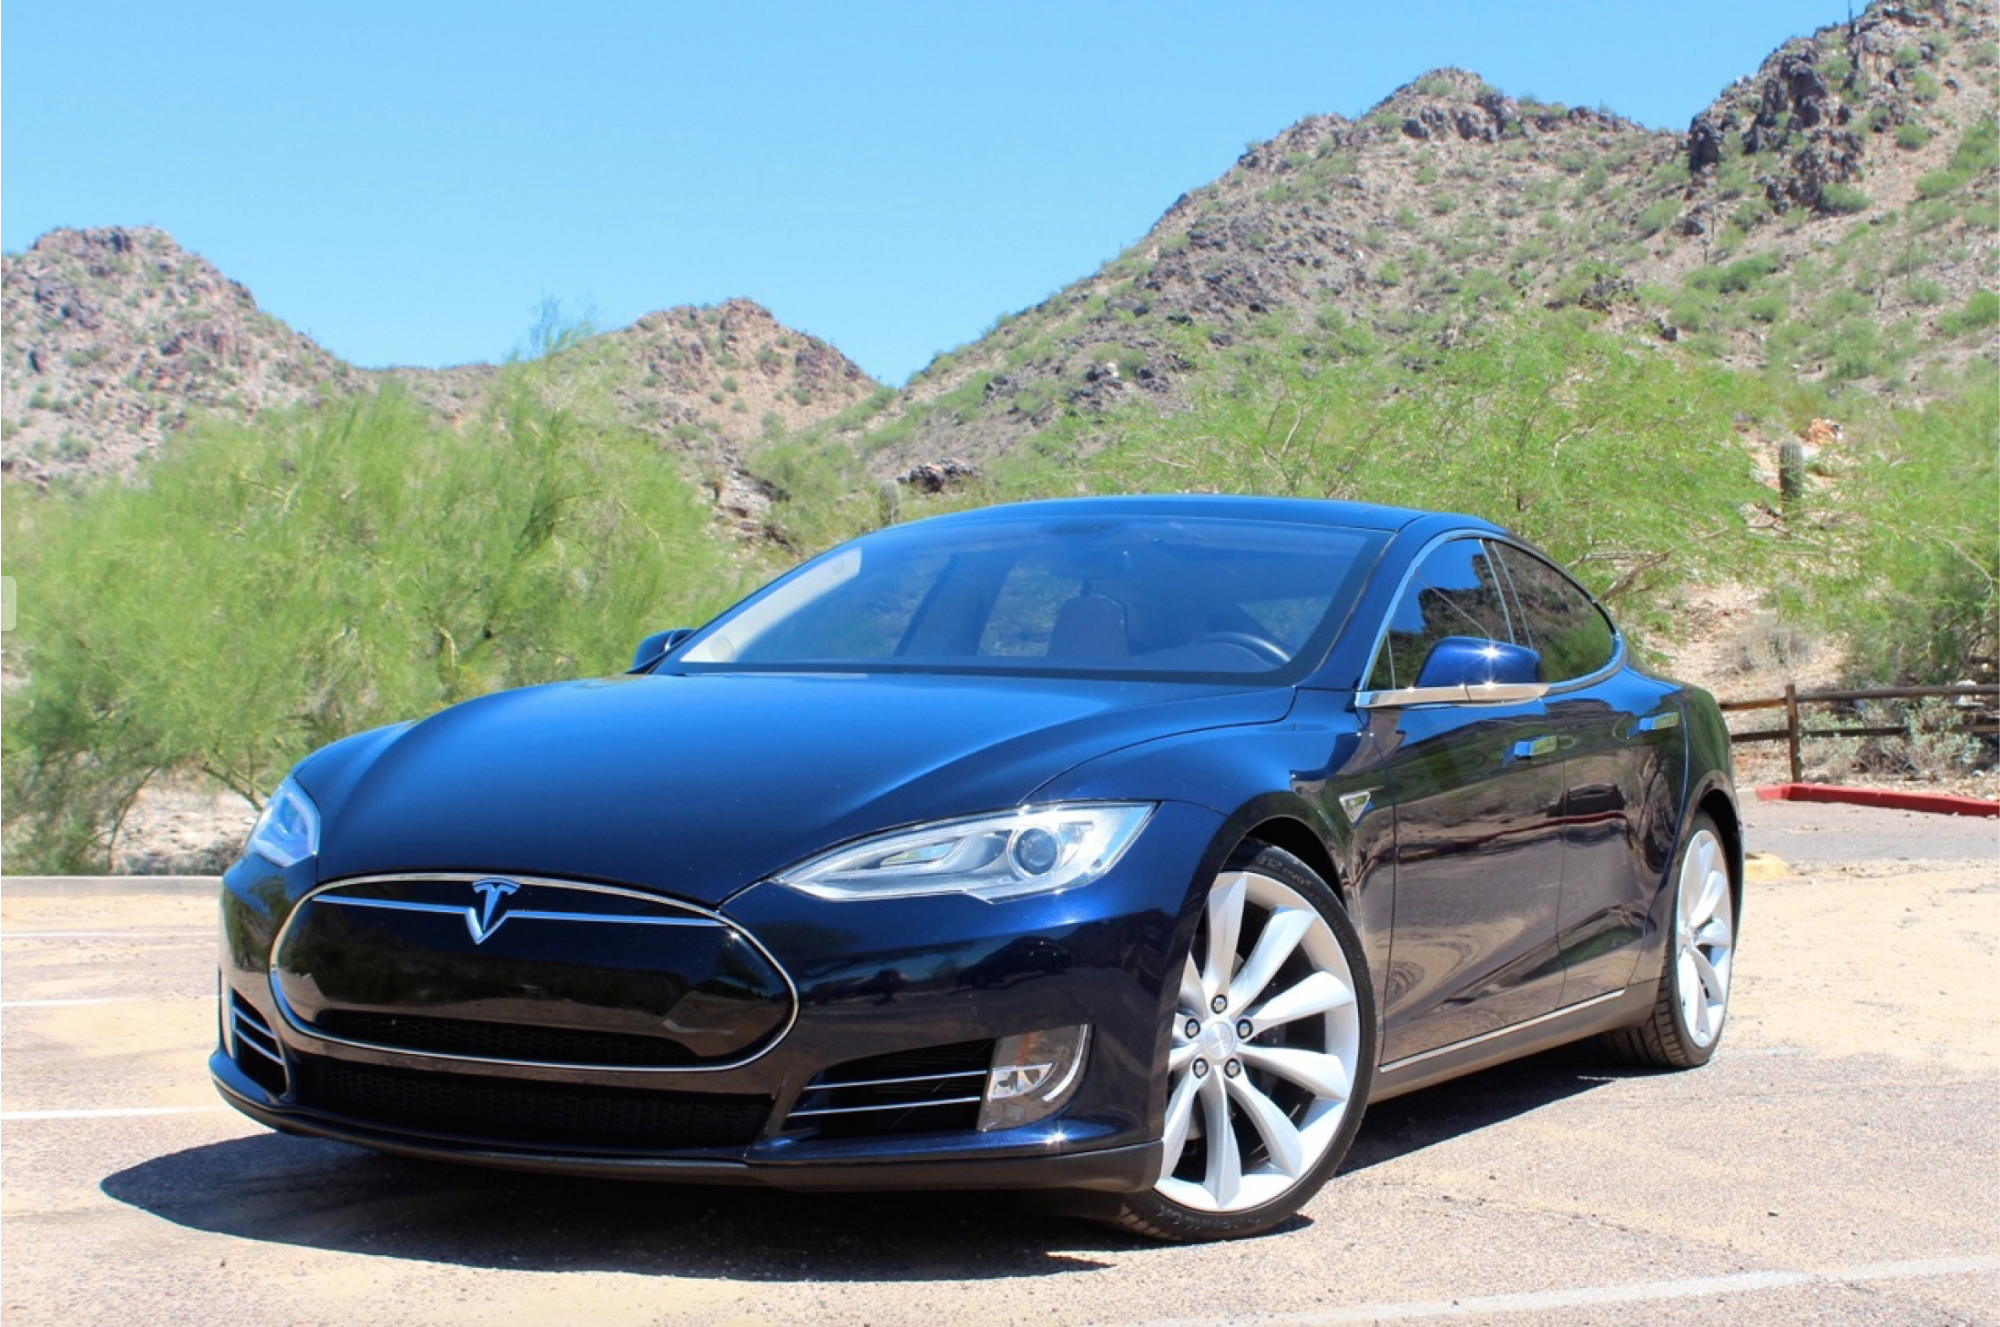 How I Used & Abused My Tesla — What a Tesla looks like after 100 000